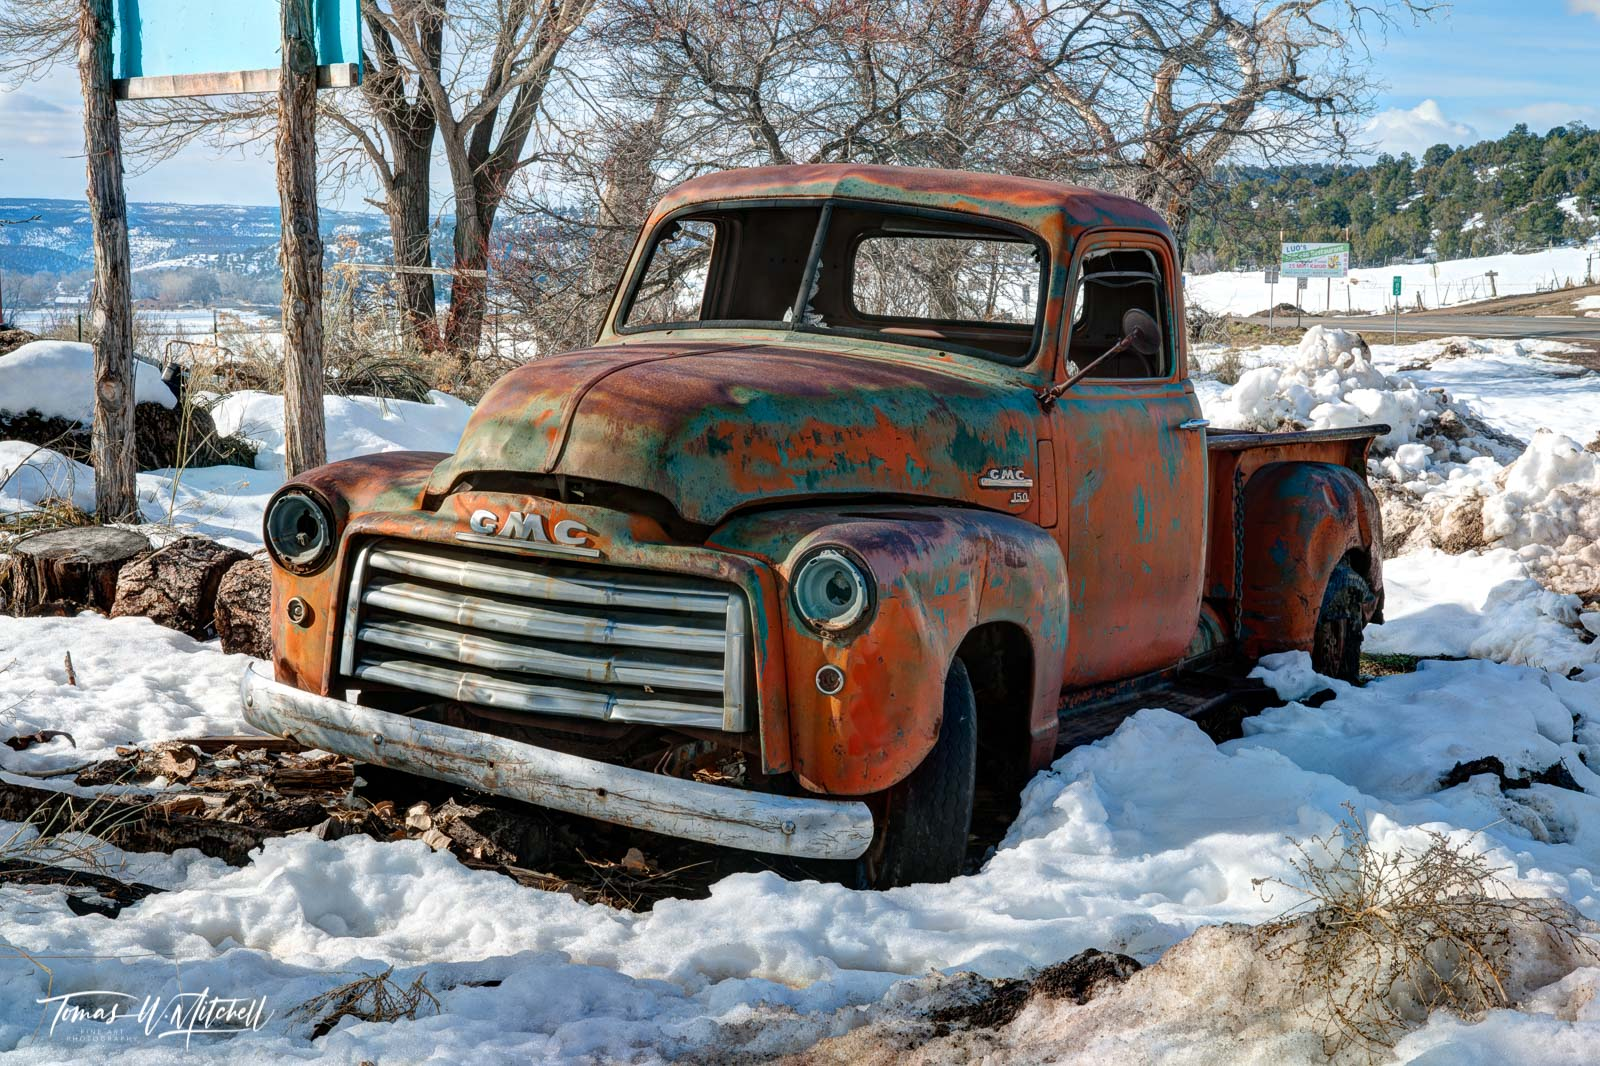 limited edition, fine art, prints, photograph, snow, orderville, Utah, old, gmc, truck, road, rusty, red, greenish, colorful, image, broken, abandoned, rural, america, photo